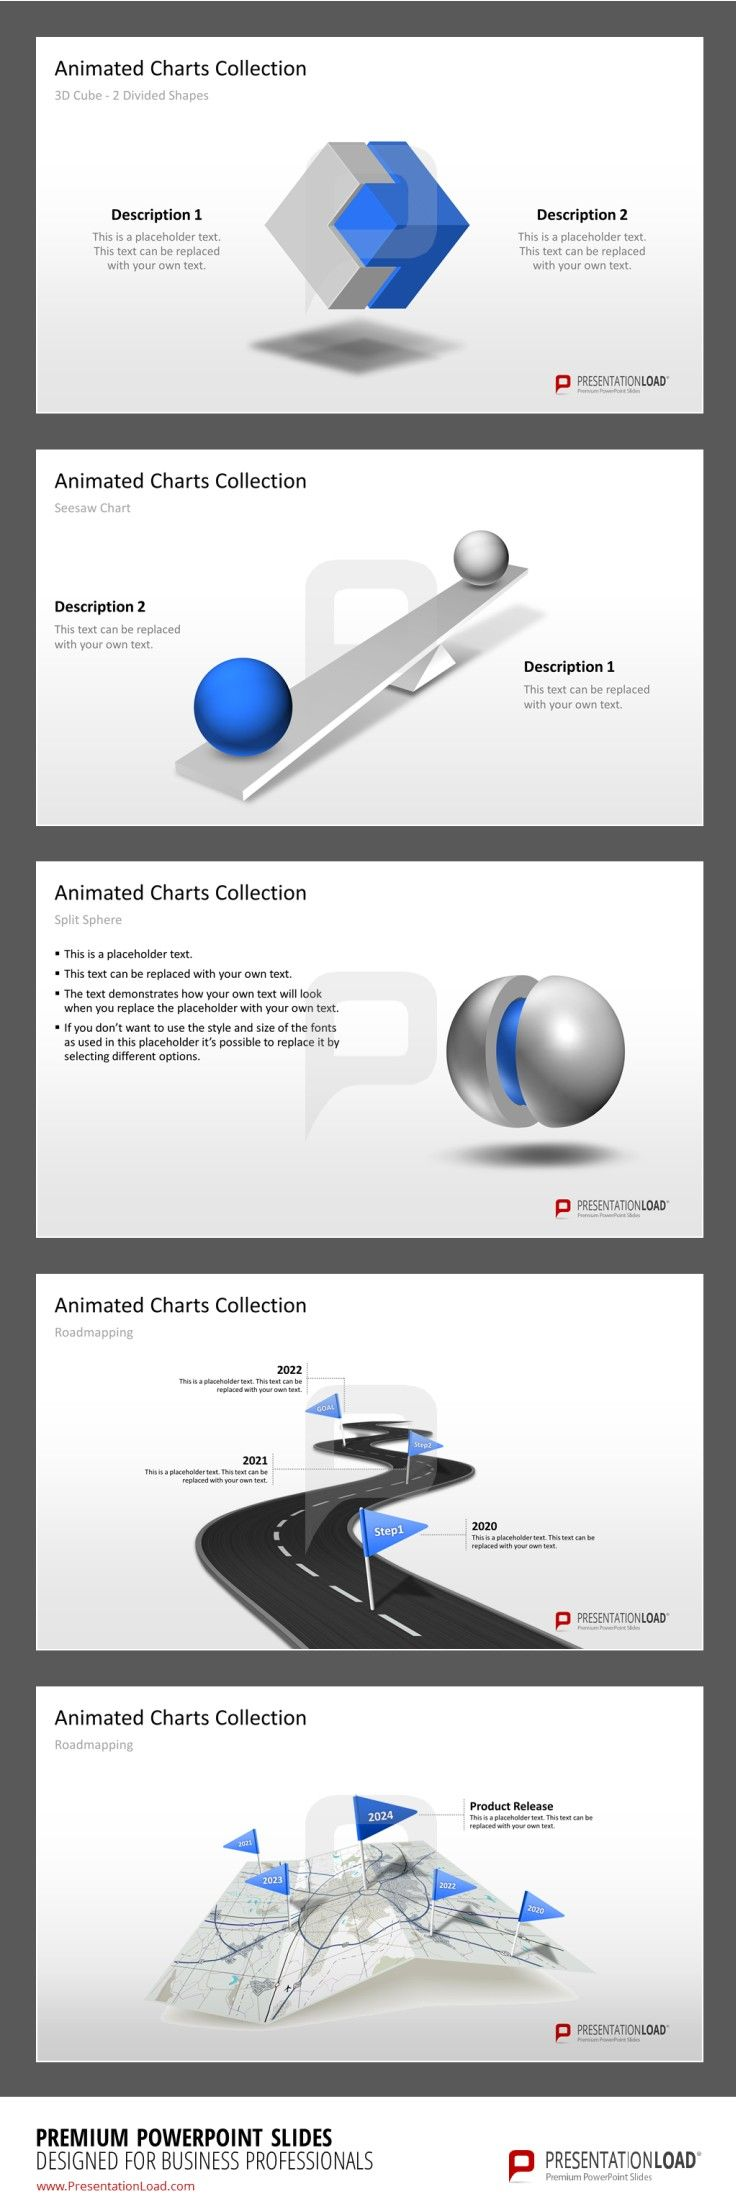 15 best animation powerpoint templates images on pinterest animated powerpoint templates the animated charts collection contains a variety of different animated objects you can toneelgroepblik Images